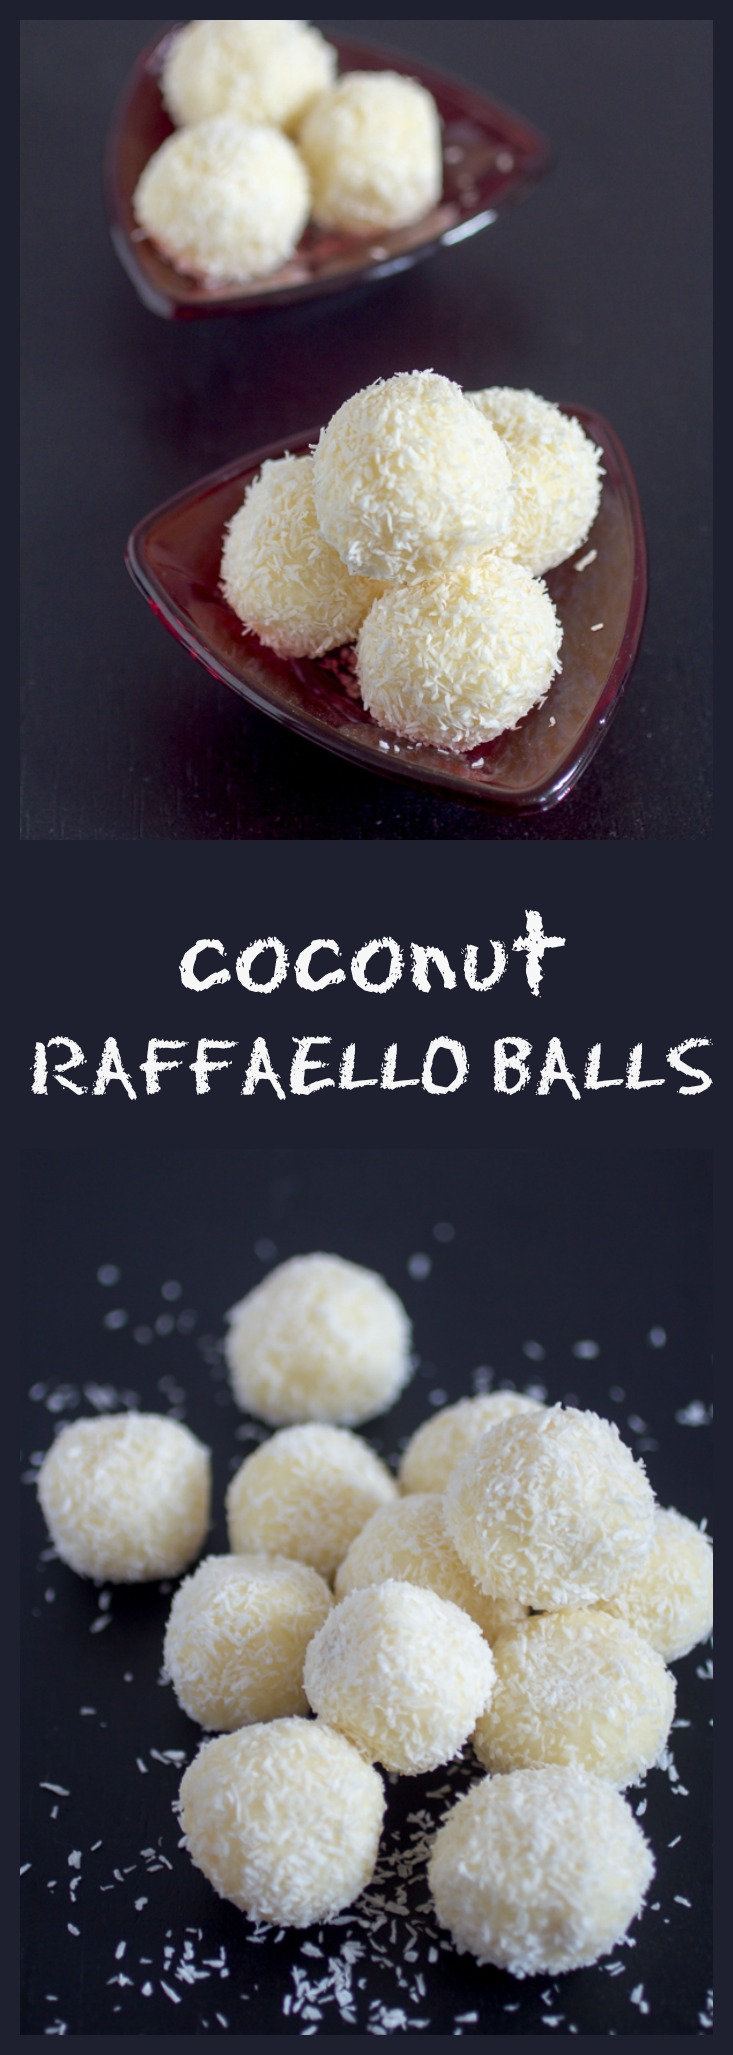 Easiest and most delicious Coconut Raffaello Balls recipe in the world. I promise!